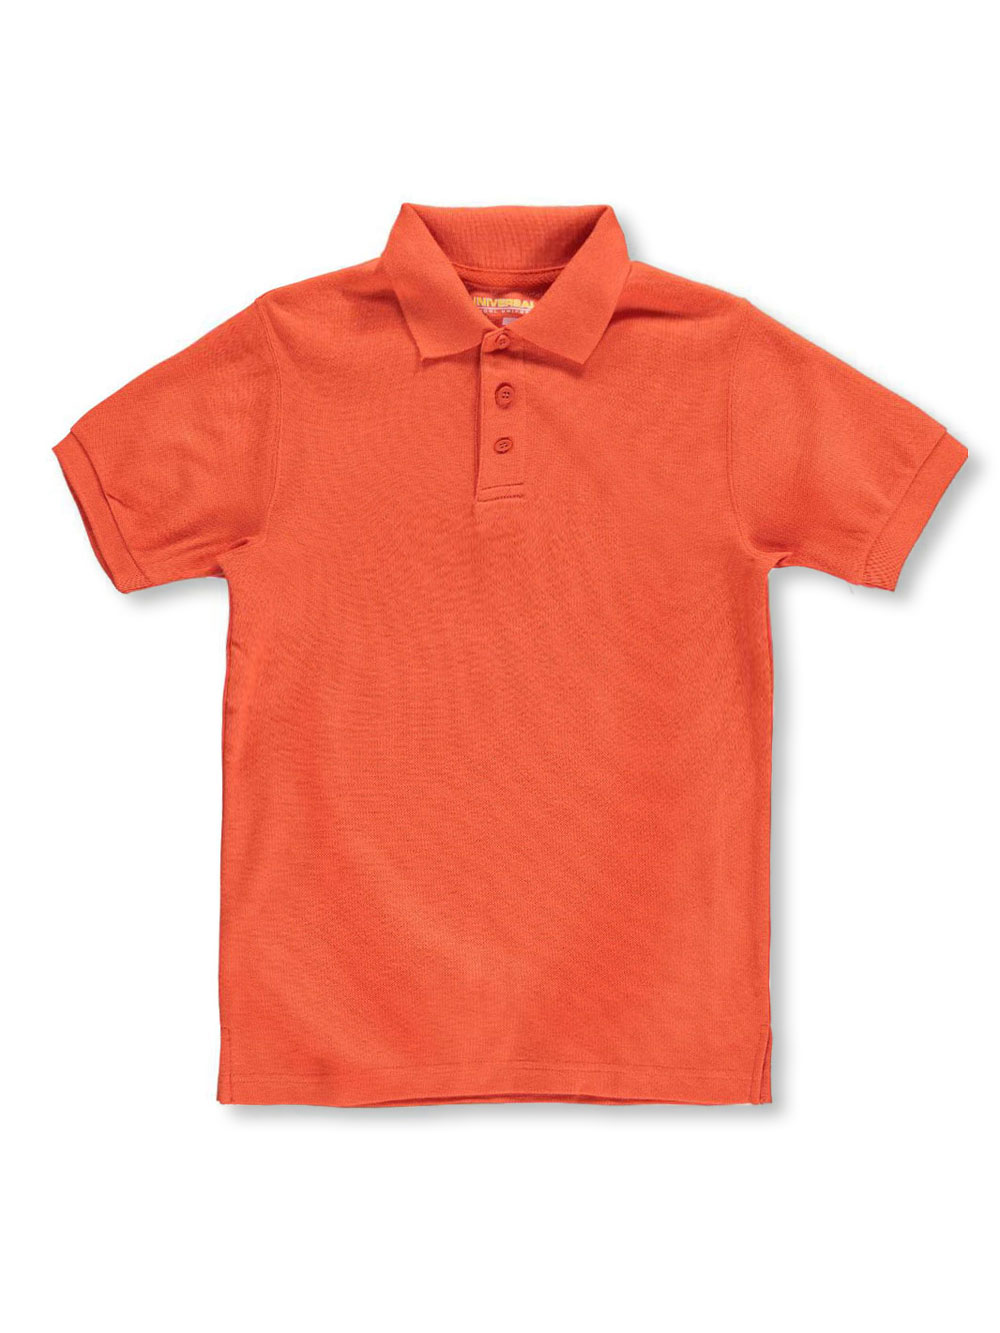 Boys Orange Knit Polos